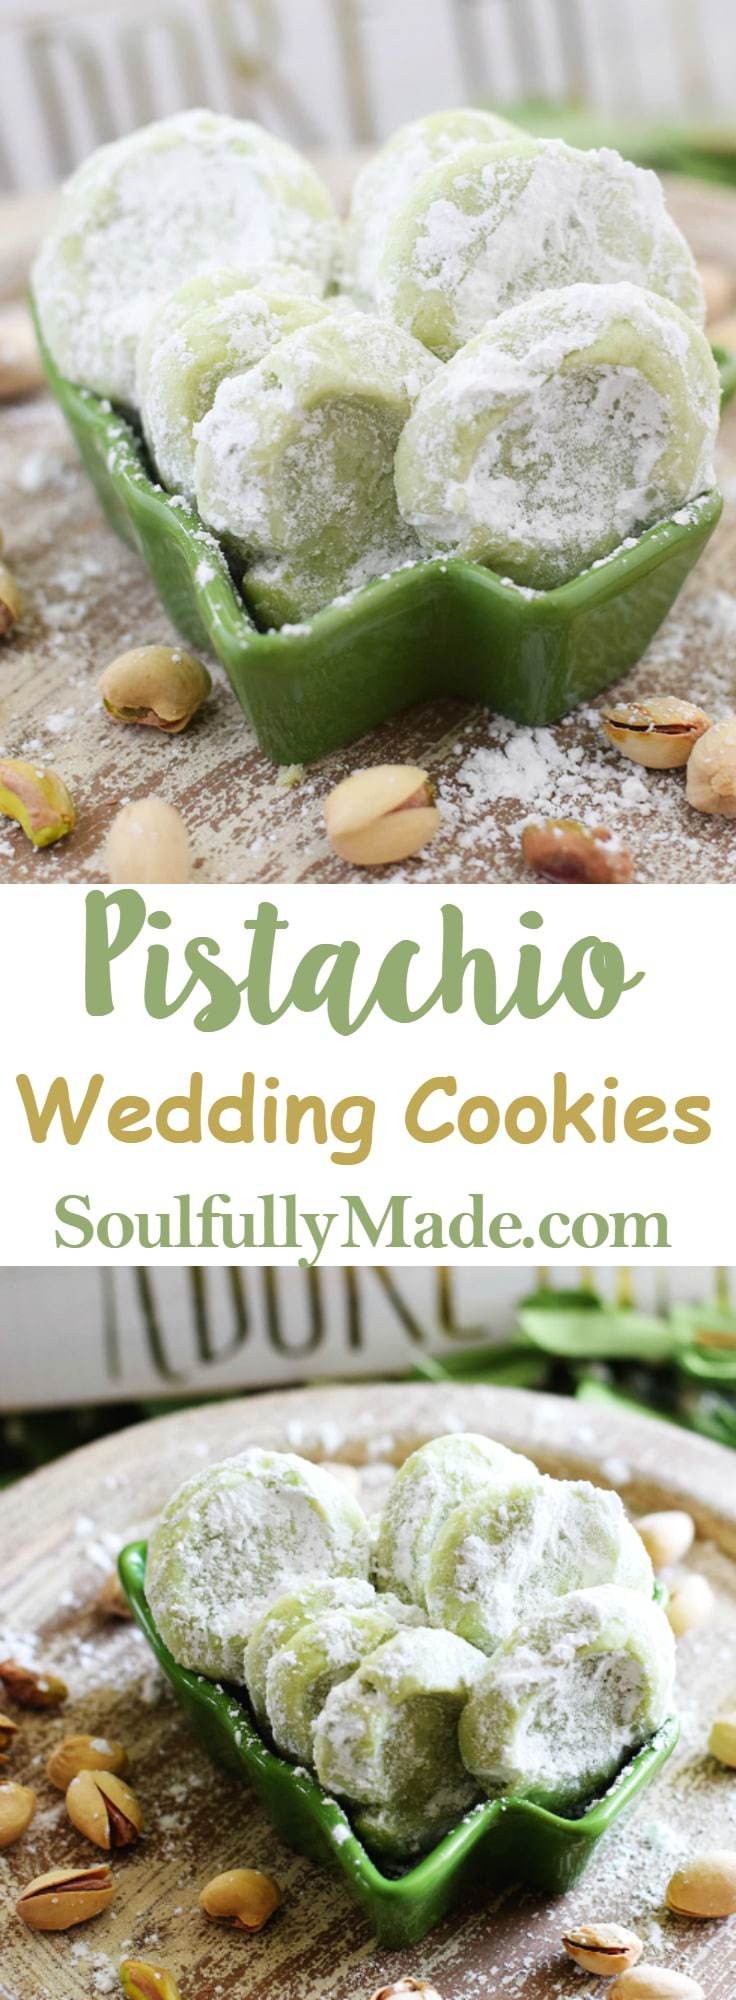 Pistachio Wedding Cookies Soulfully Made